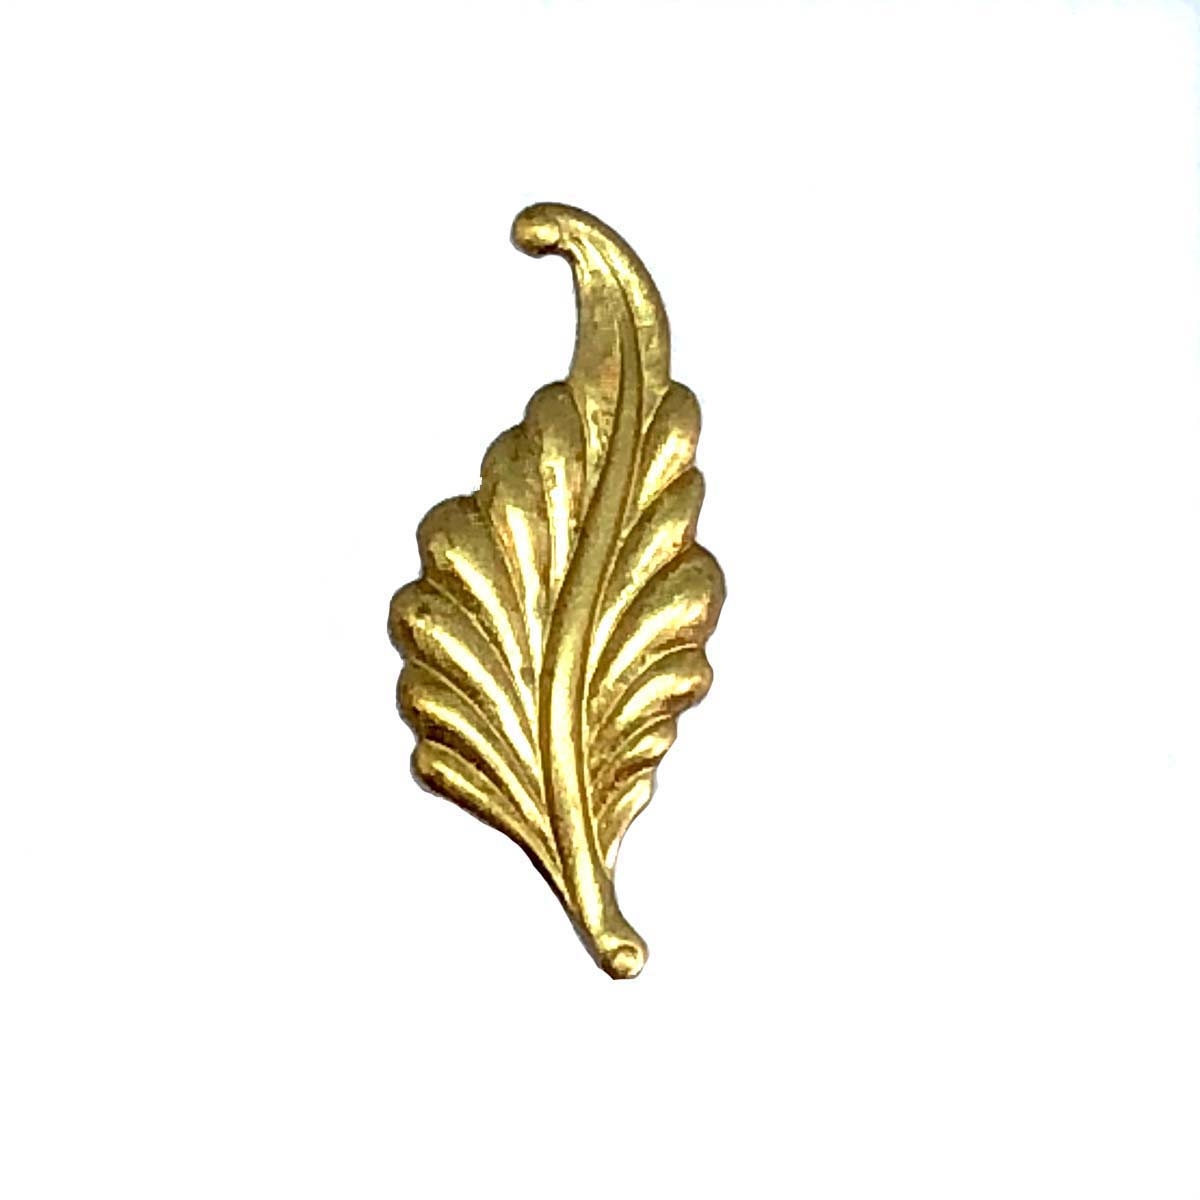 brass leaves, leaf stampings, raw brass, 06263, B'sue Boutiques, nickel free, US Made, jewelry findings, jewelry supplies, leaf findings, jewelry making, brass jewelry parts, vintage jewelry supplies,